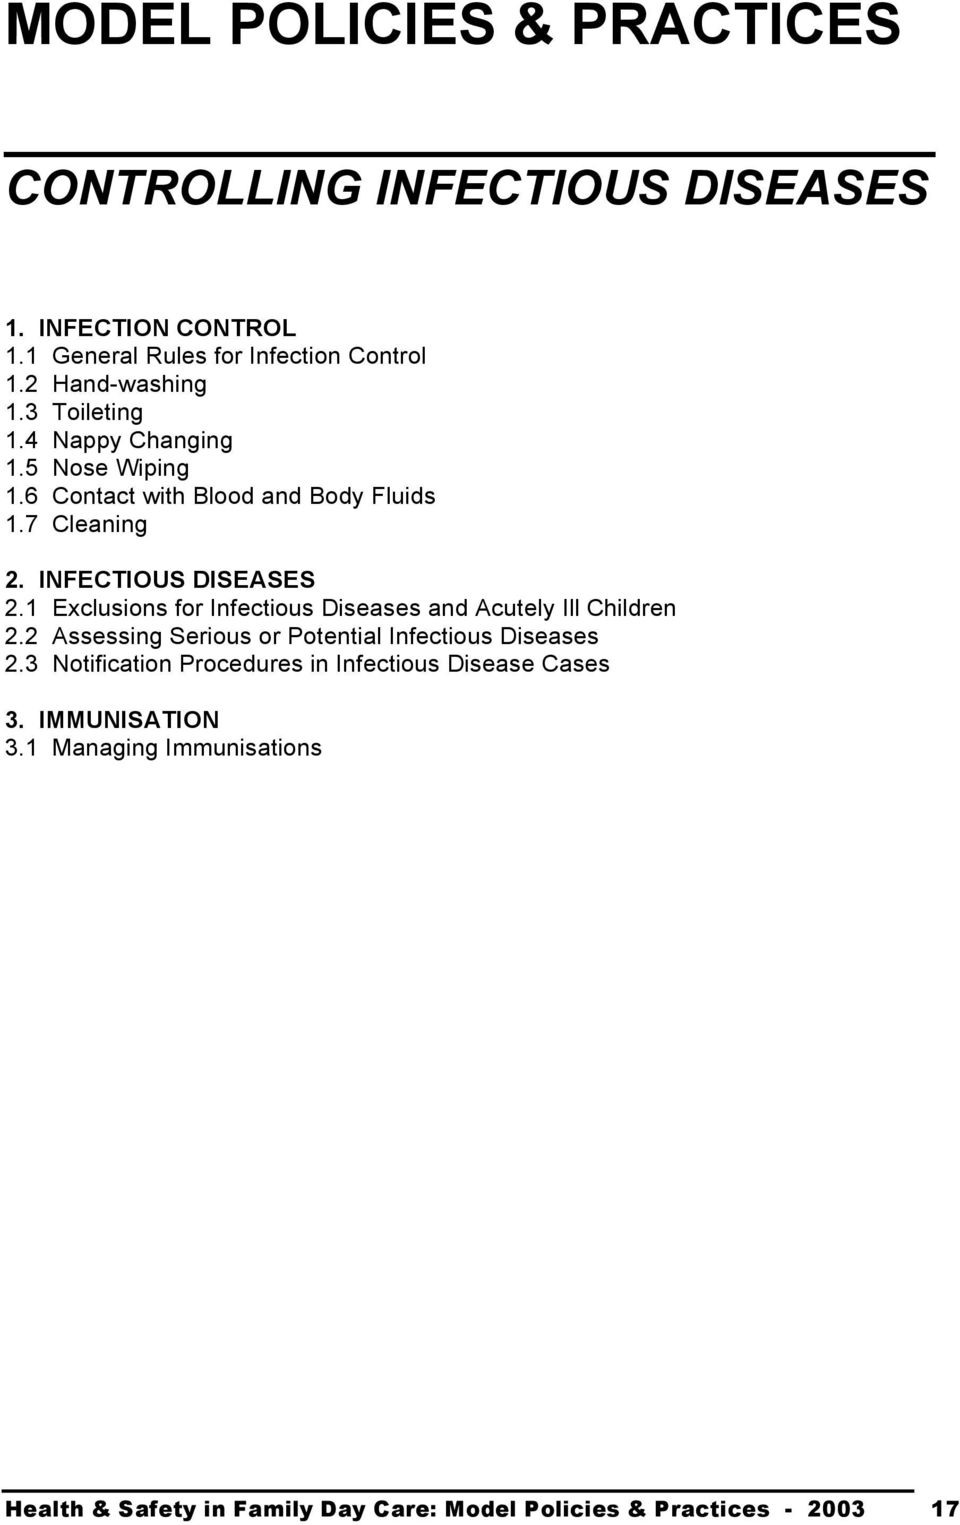 INFECTIOUS DISEASES 2.1 Exclusions for Infectious Diseases and Acutely Ill Children 2.